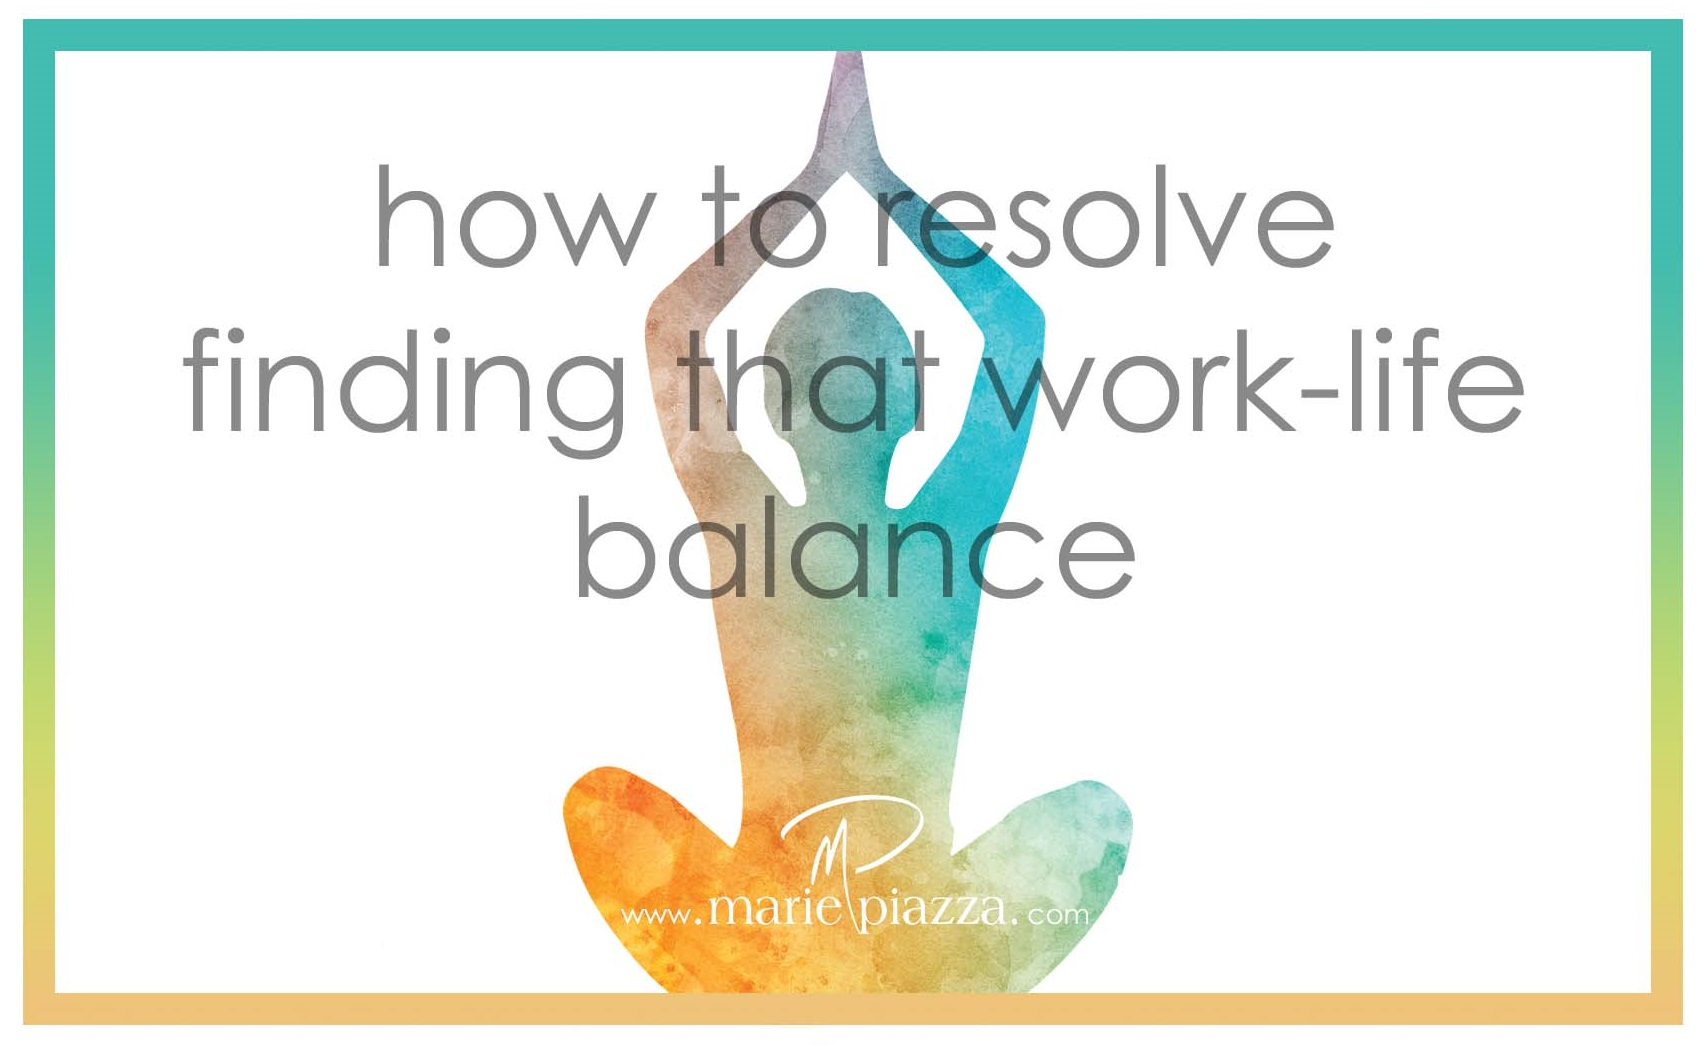 How to resolve finding that work-life balance